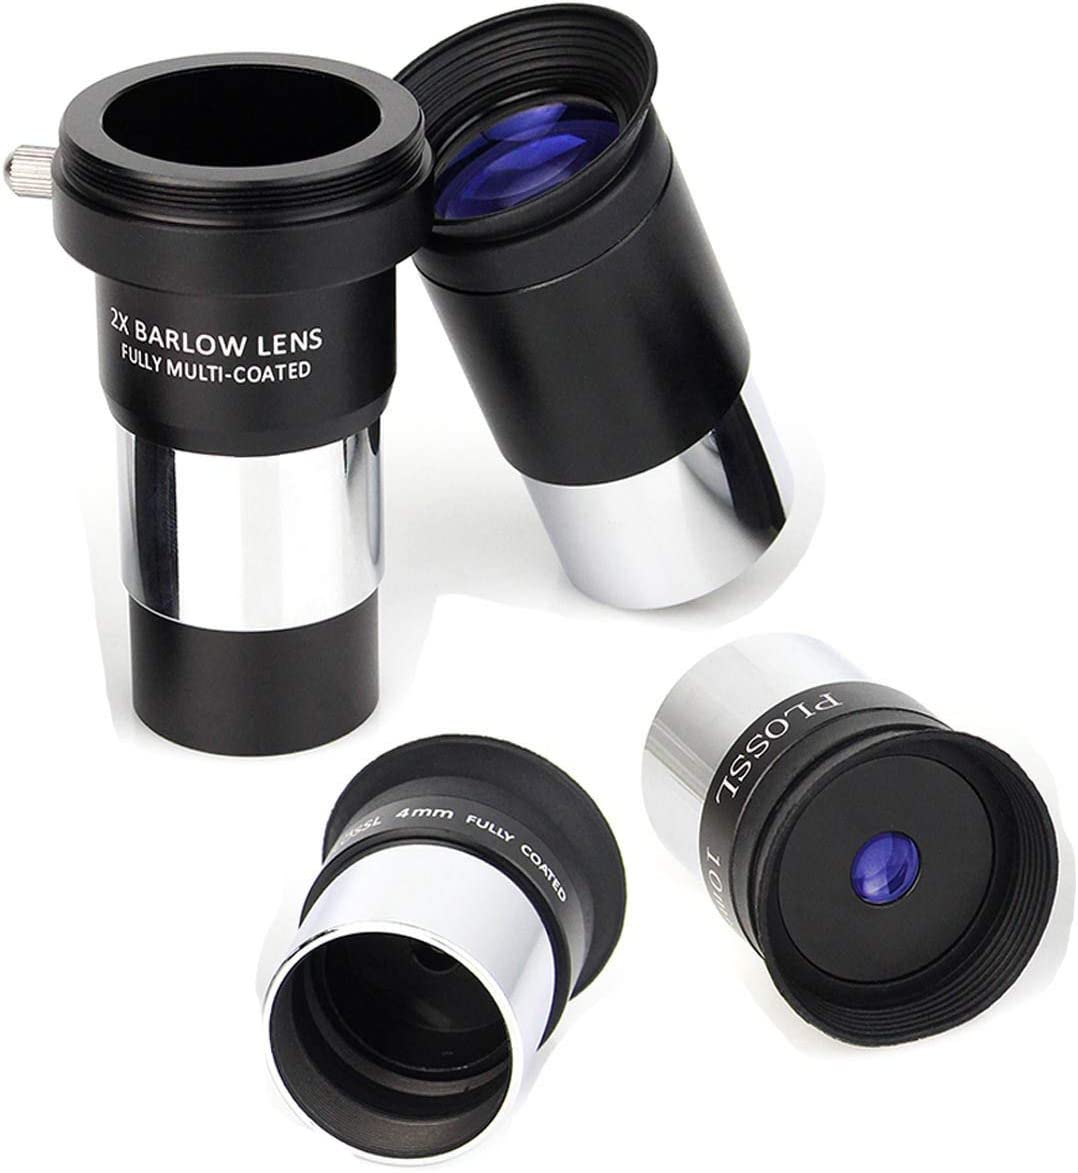 SVBONY Telescope Eyepiece Multi Coated Telescopes Lens Telescope Accessory Kit with Barlow Lens for Standard 1.25 inches Filter Threads 4mm 10mm 25mm